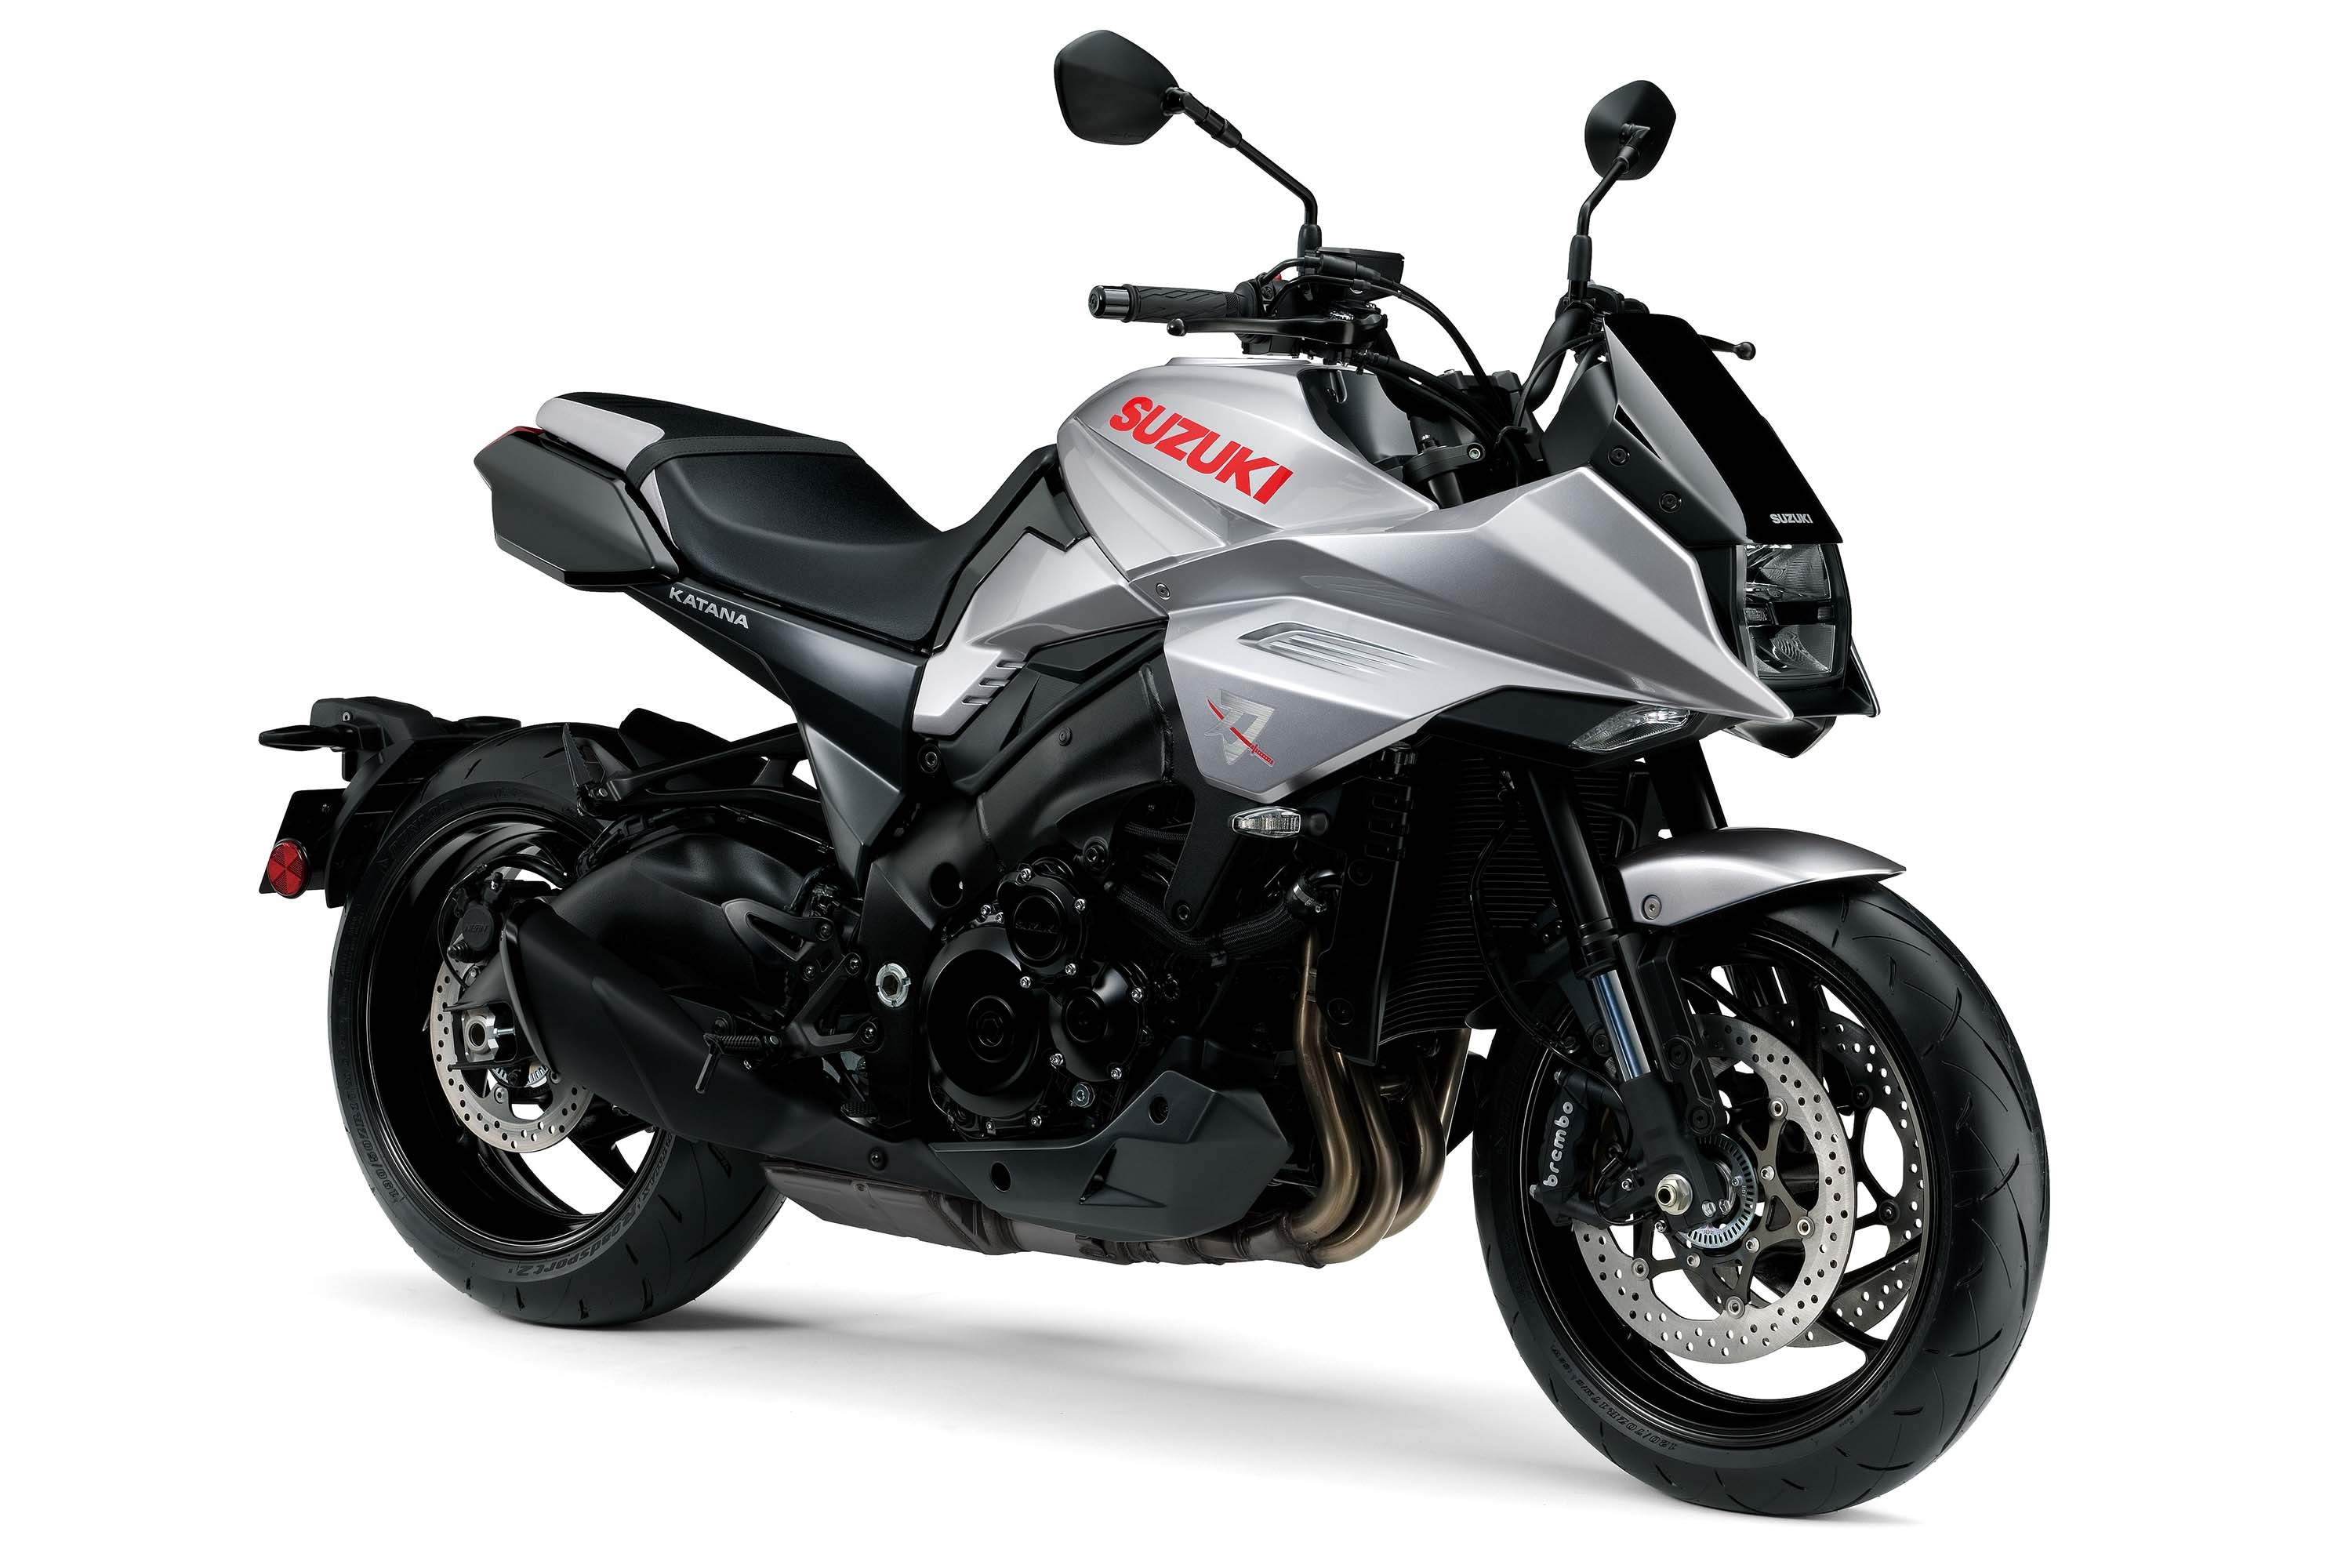 2020 Suzuki Katana USA 02 copy copy